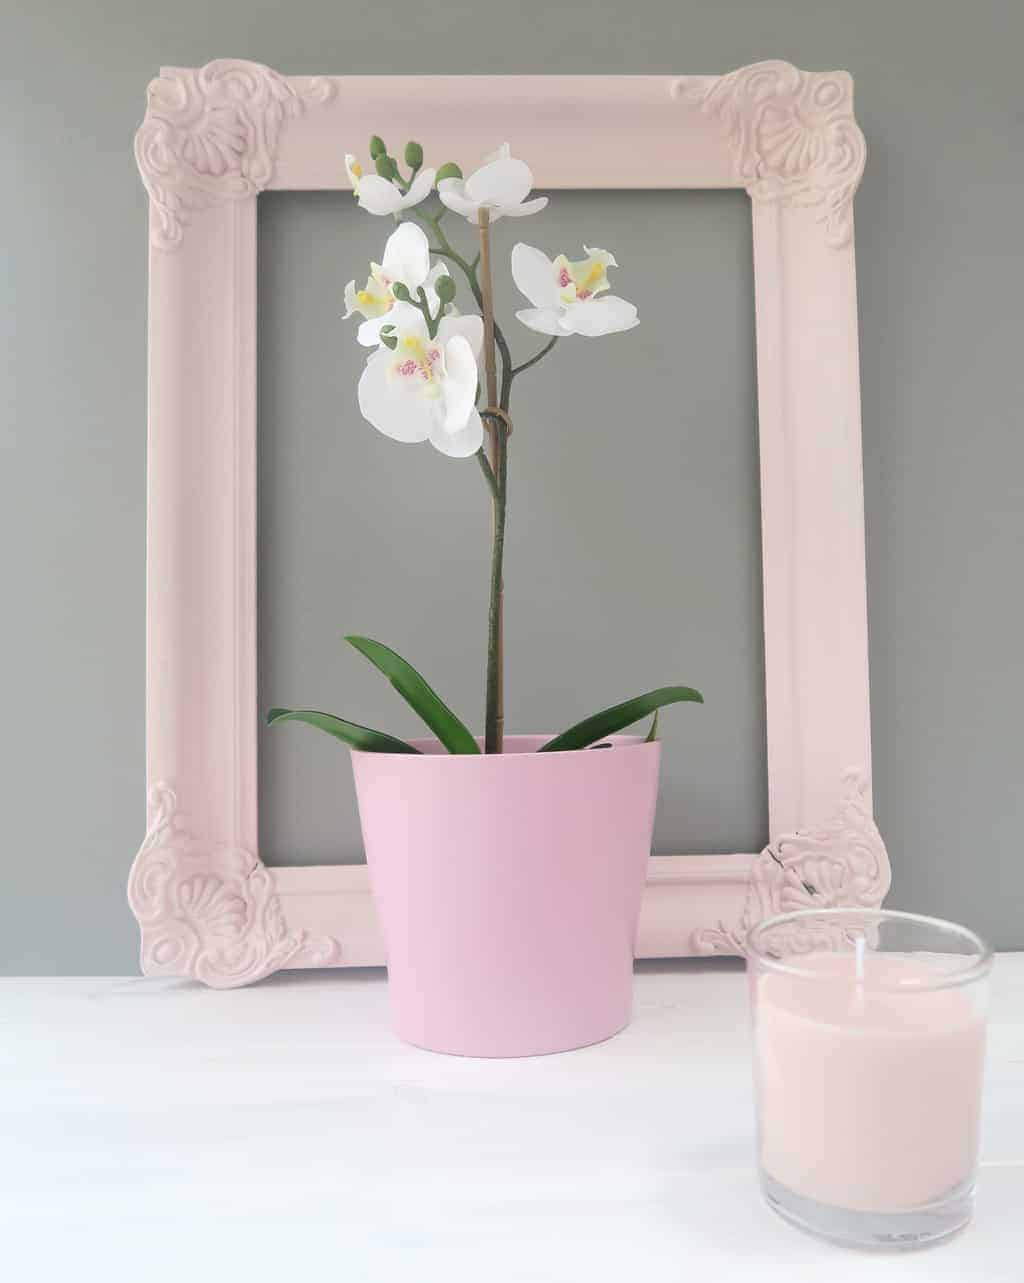 How Do You Decorate with Blush Pink?